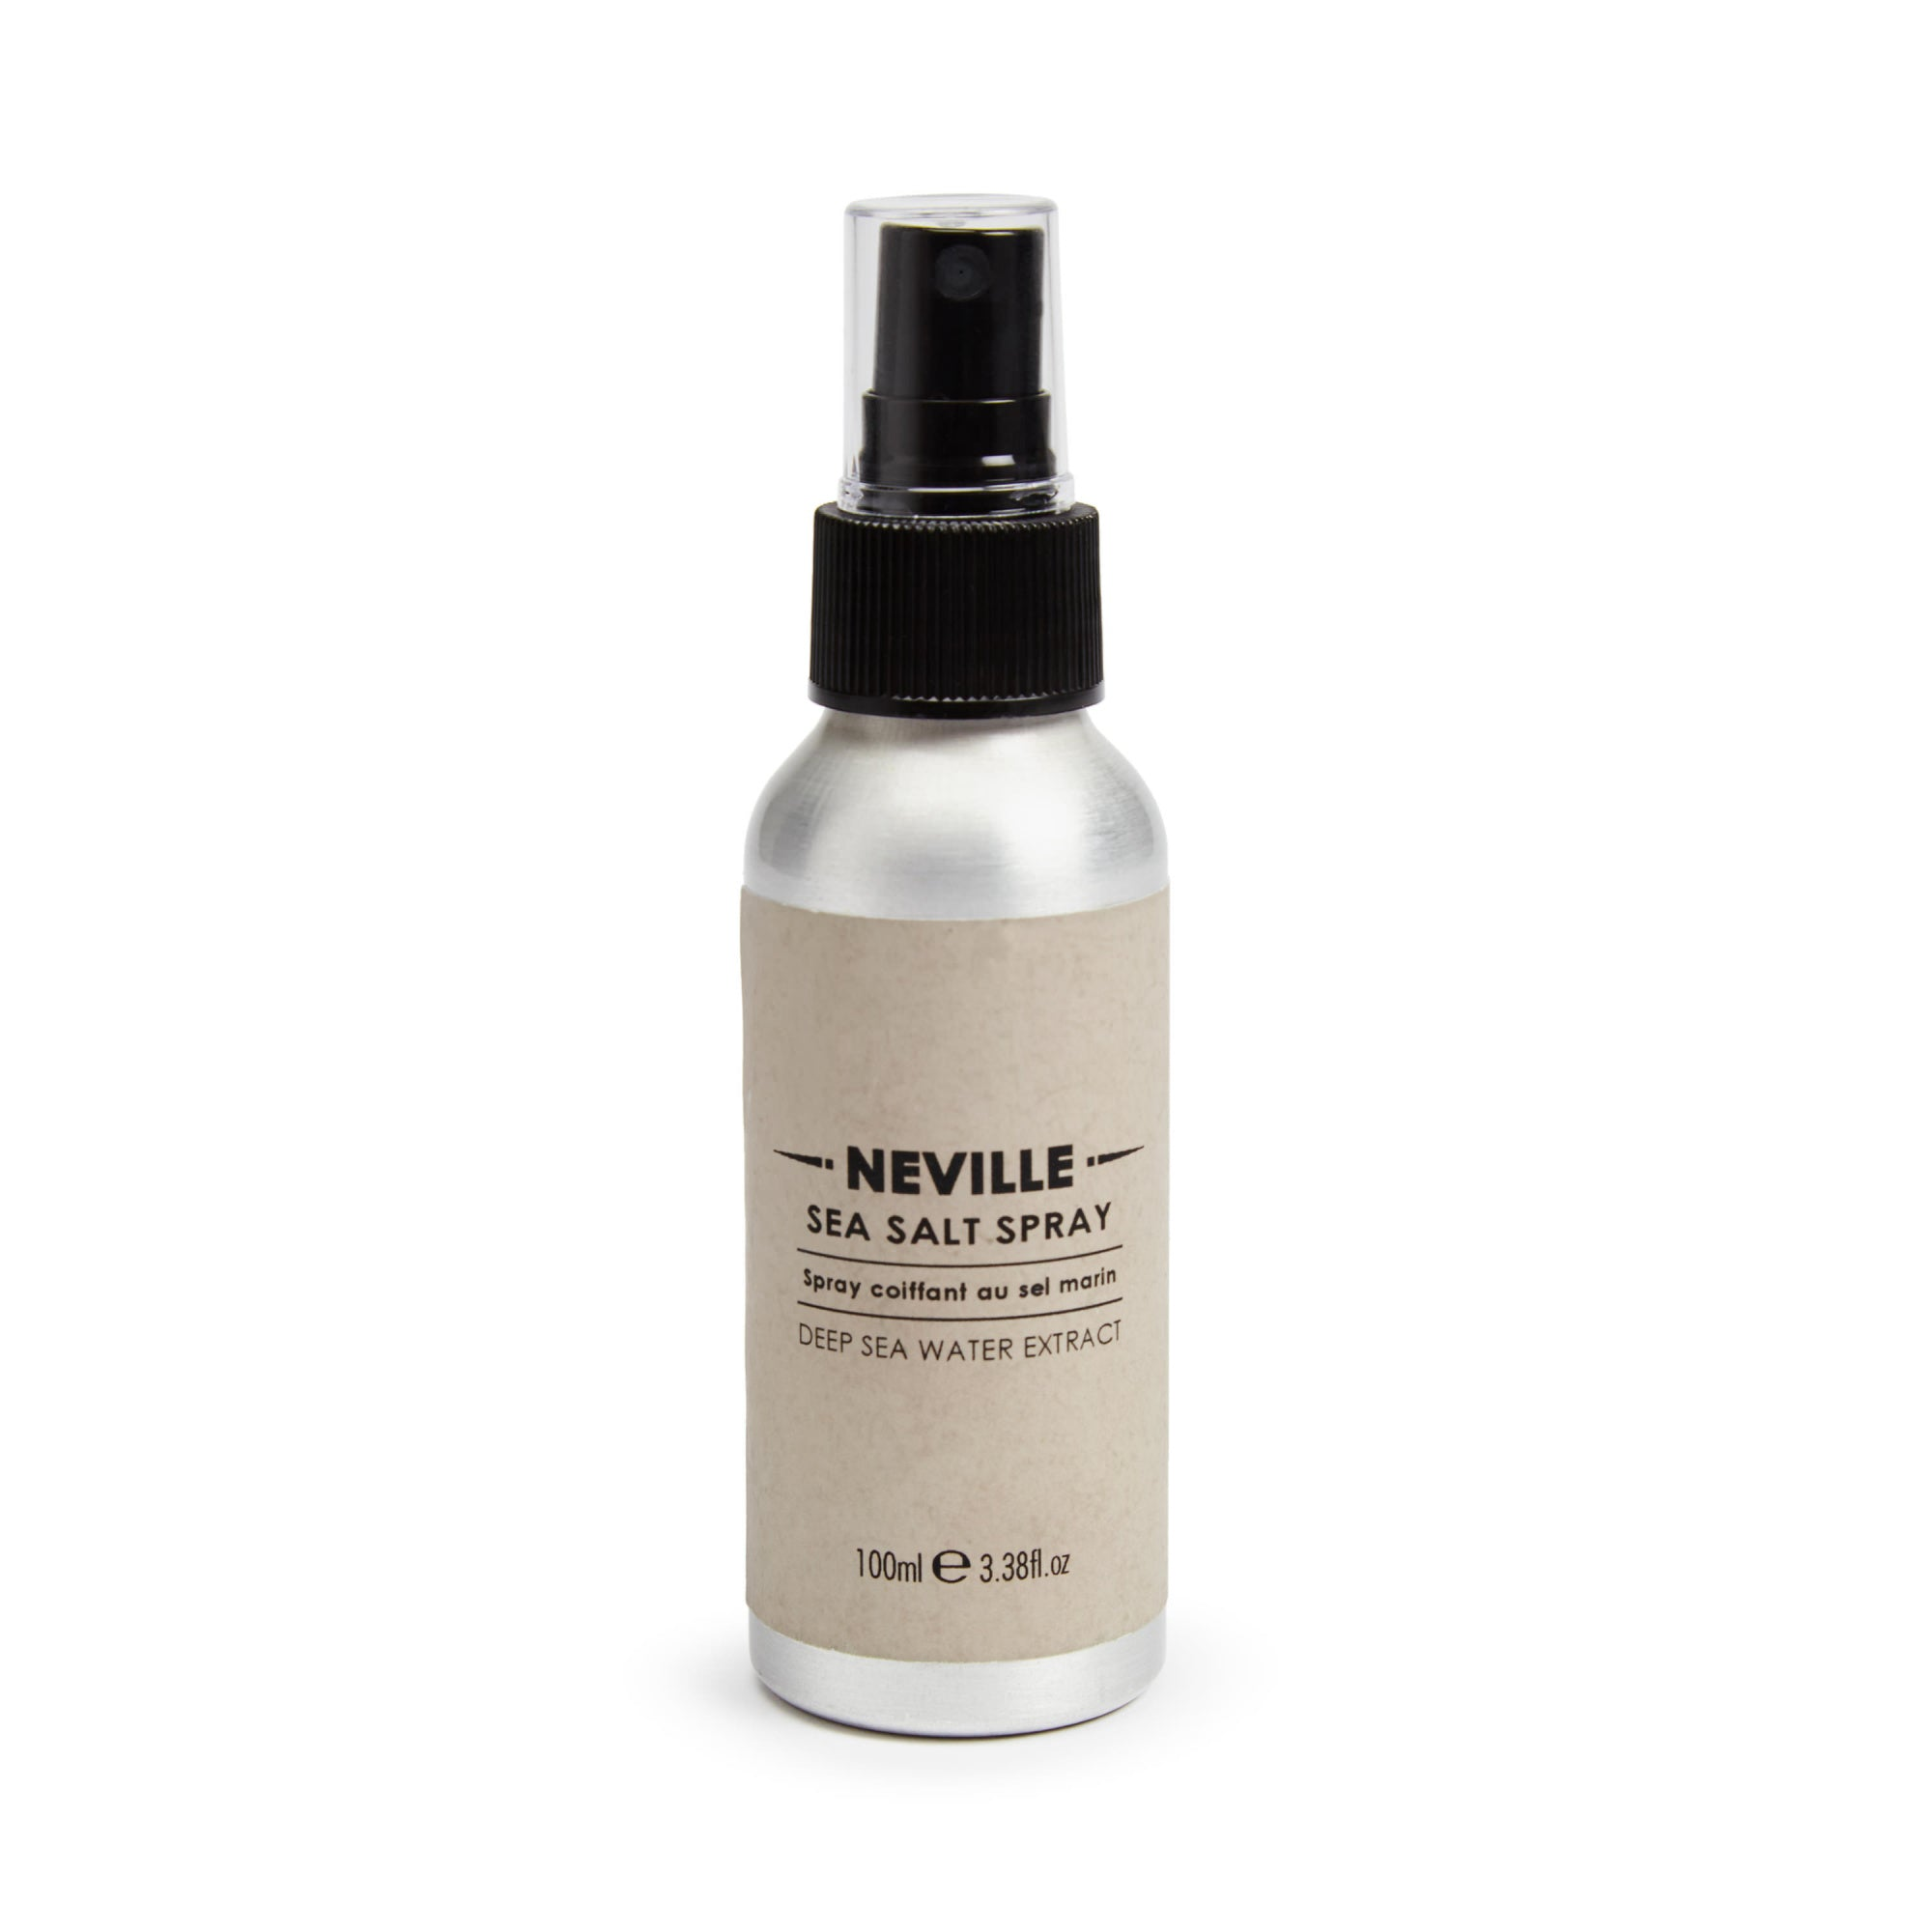 Gentleman's Styling Spray | Beauty | Cowshed | [product_tag] - Fair Bazaar Ethical Living